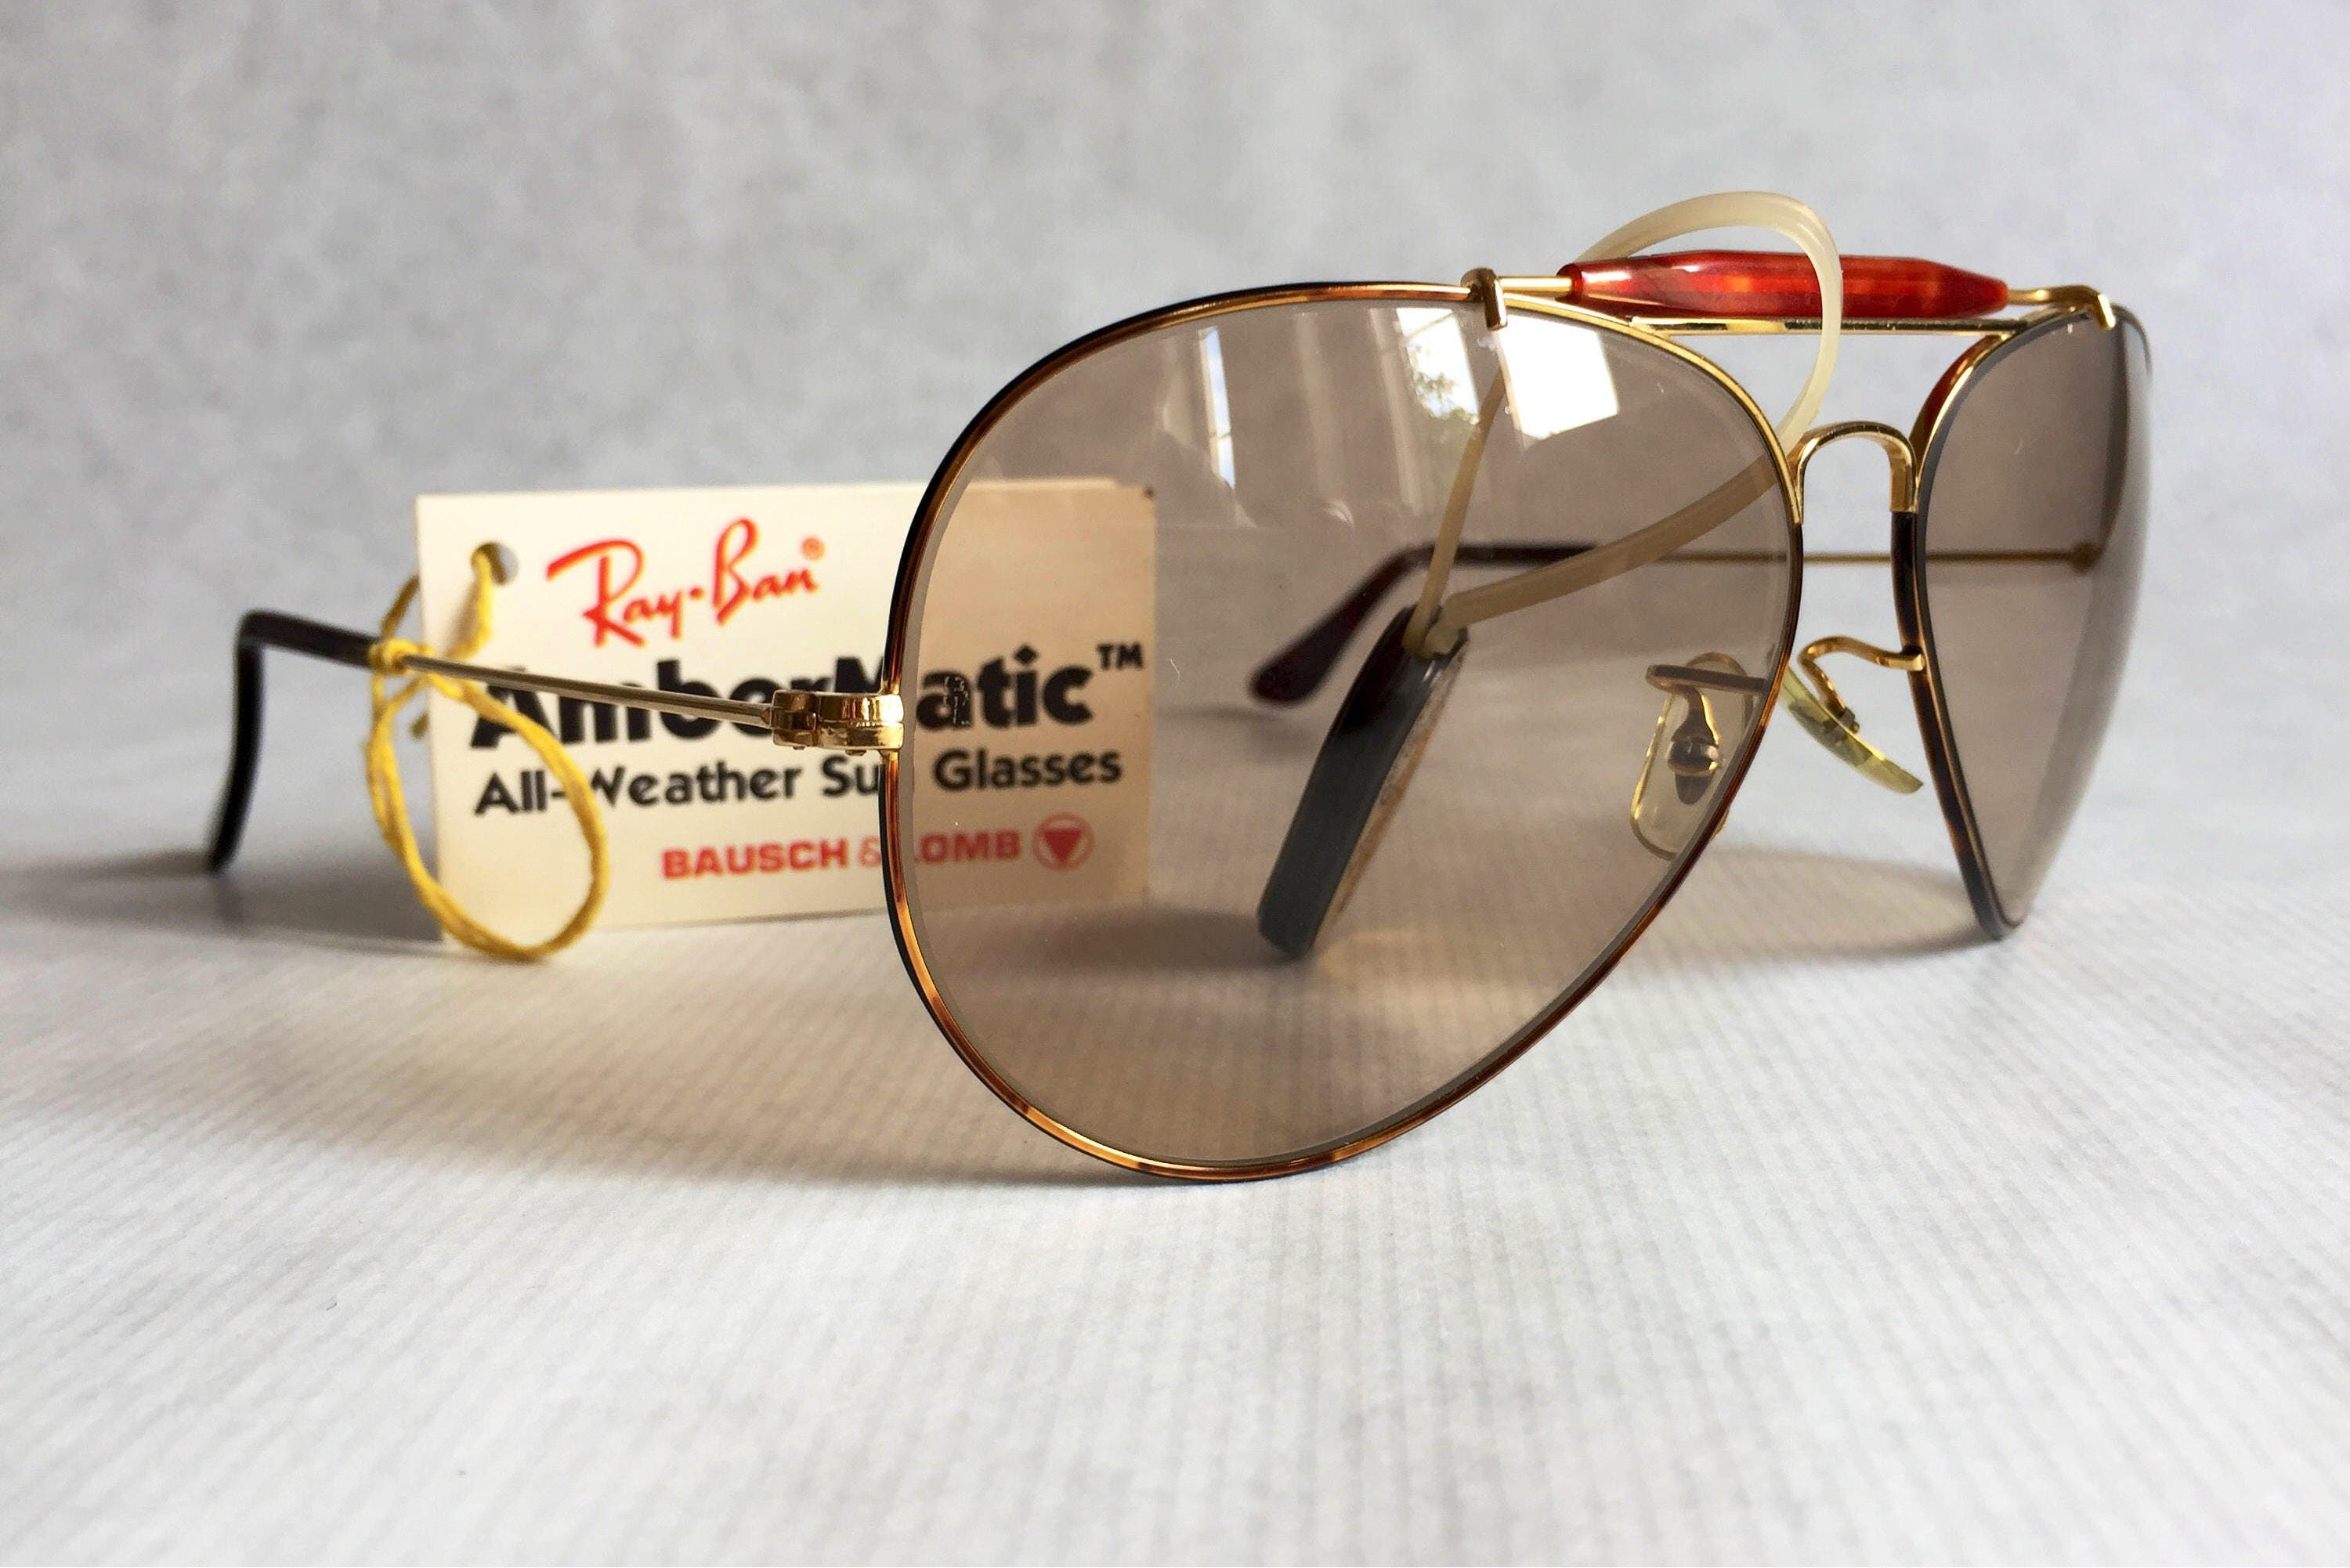 861fdee5be Ray-Ban Outdoorsman Tortuga Ambermatic™ by Bausch   Lomb Vintage Sunglasses  NOS Full Set. gallery photo ...